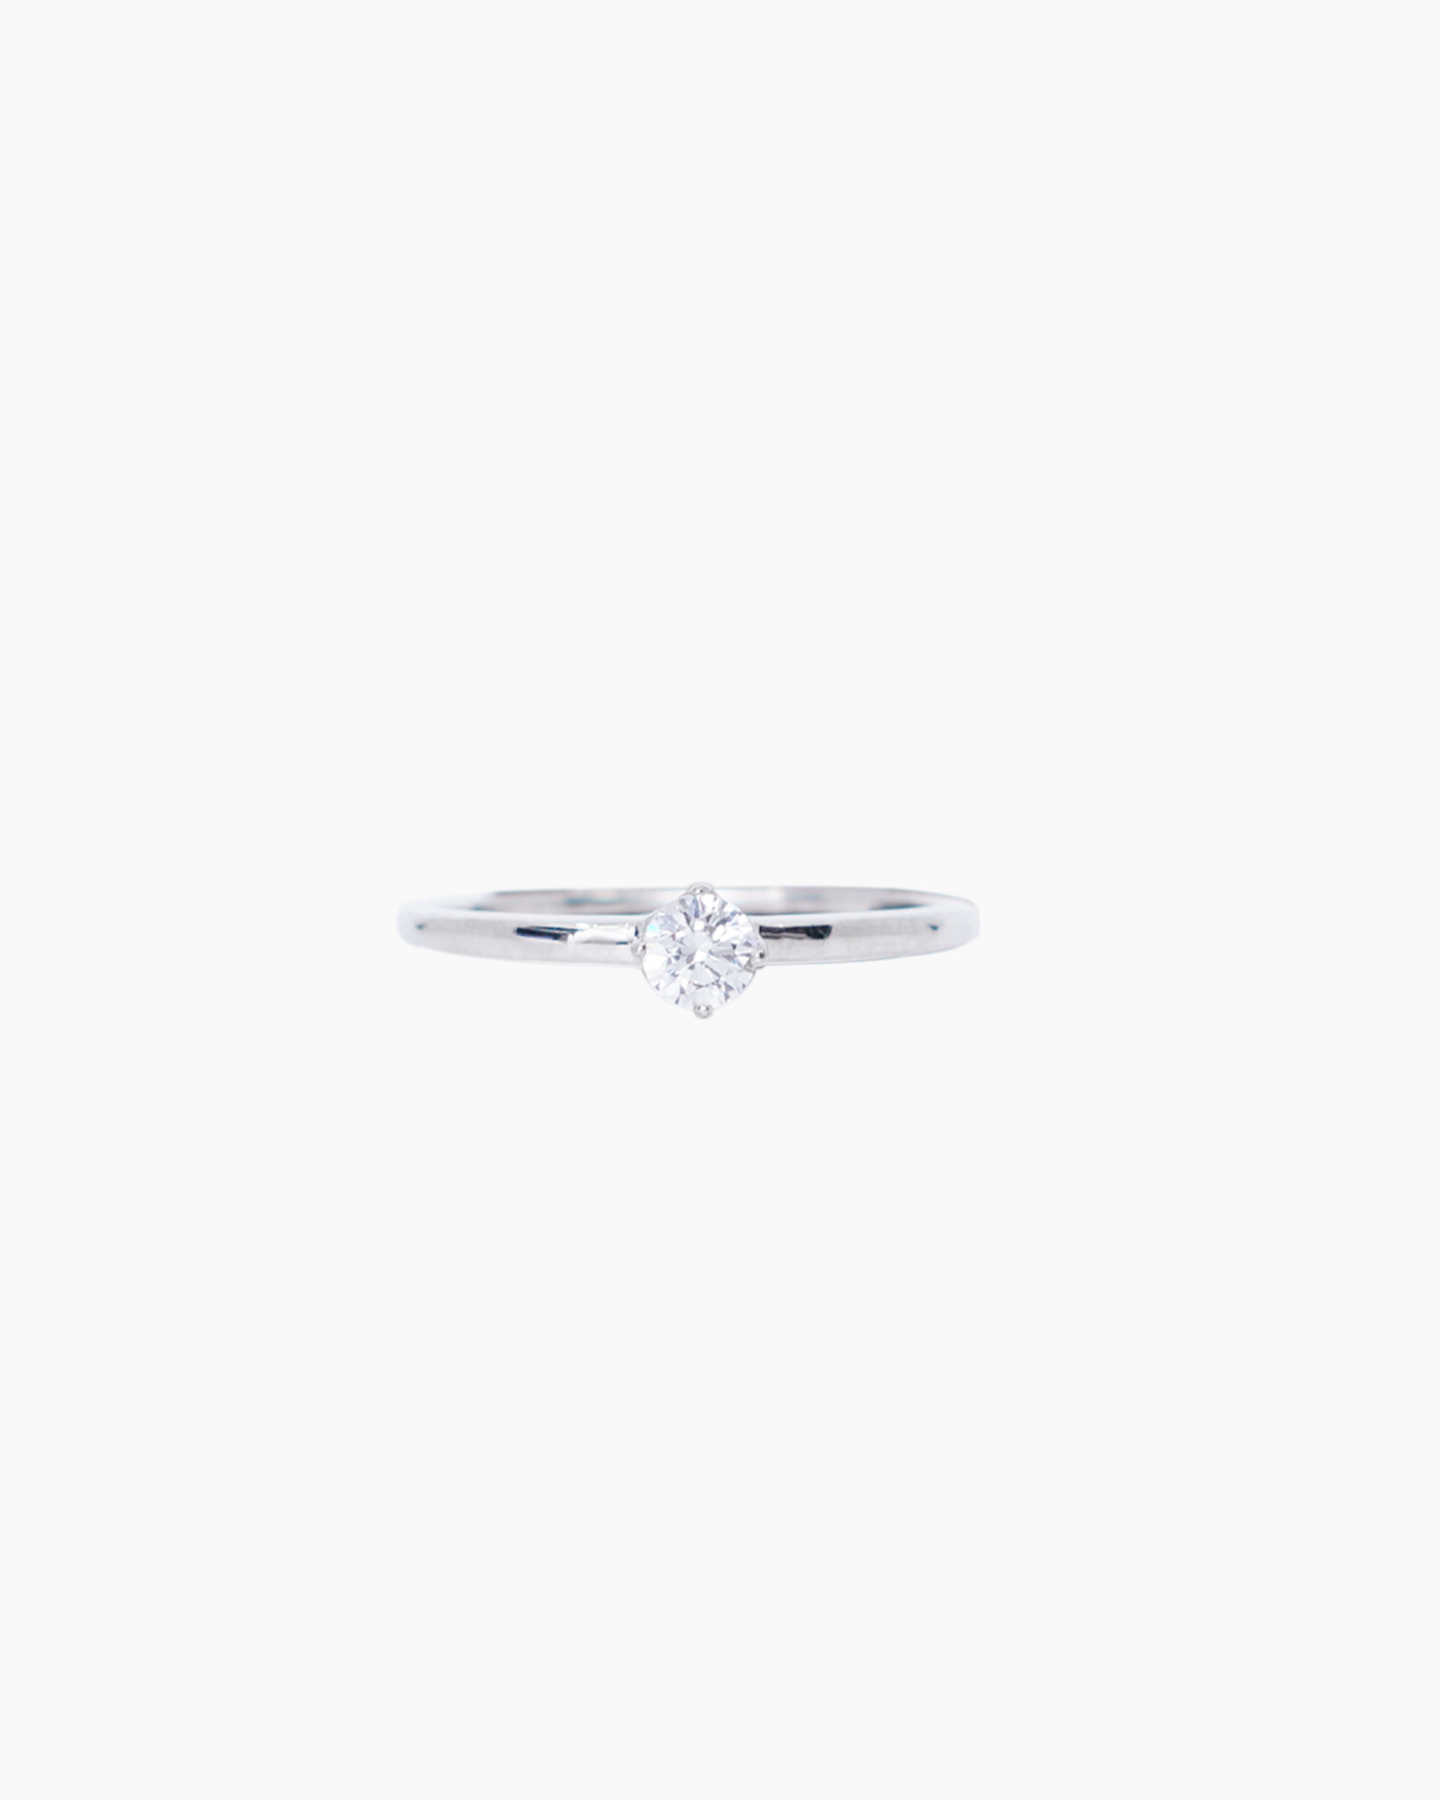 Solitaire Diamond Engagement Ring - White Gold - 1